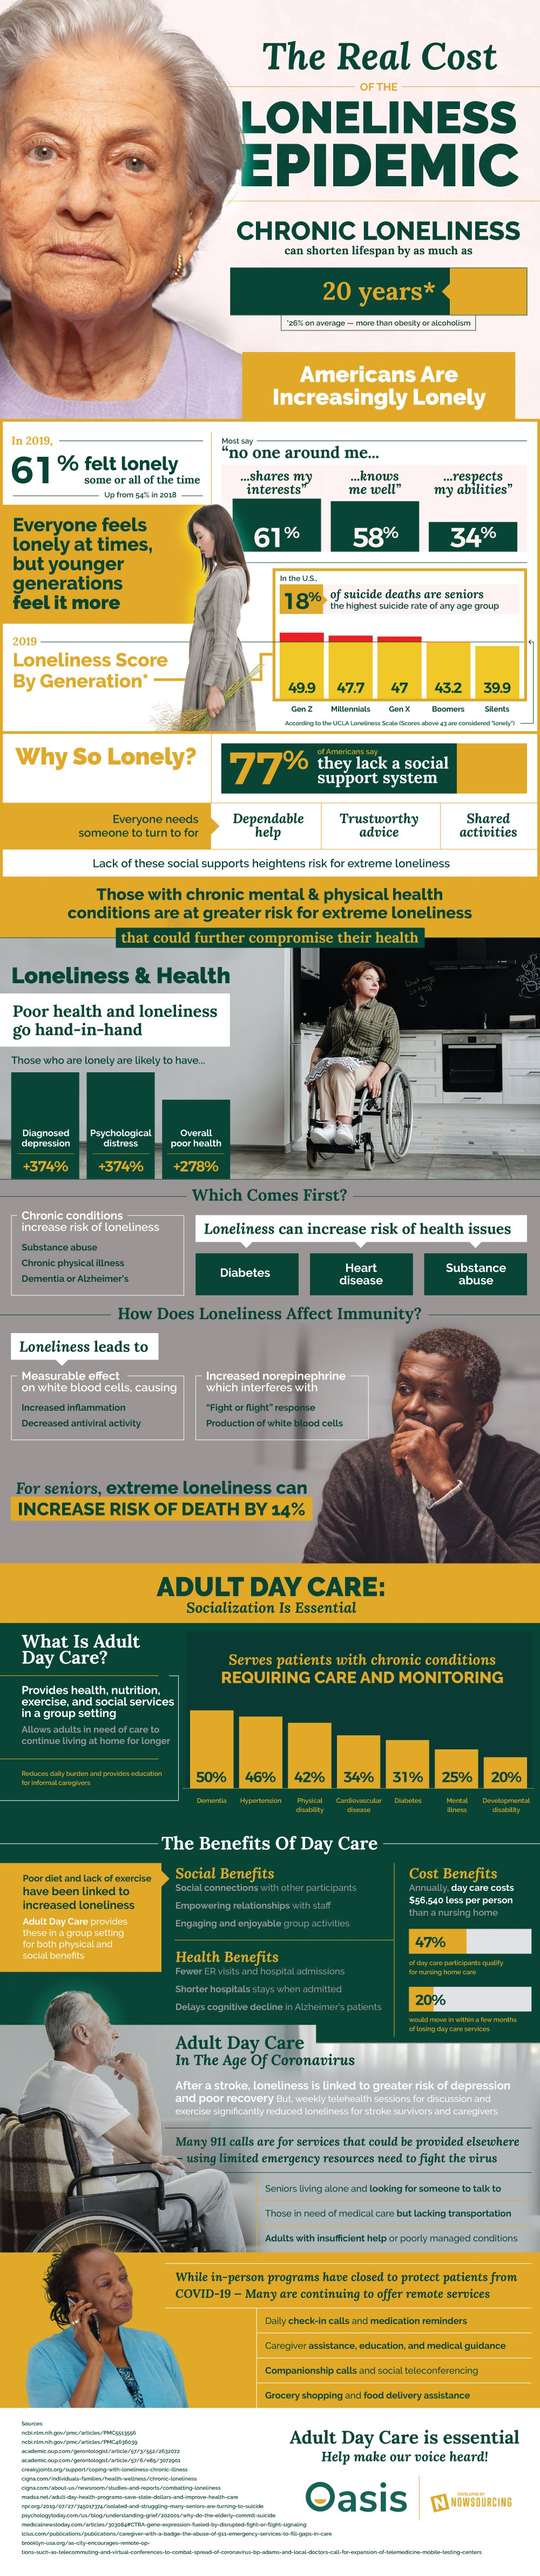 The Real Cost of the Loneliness Epidemic #infographic